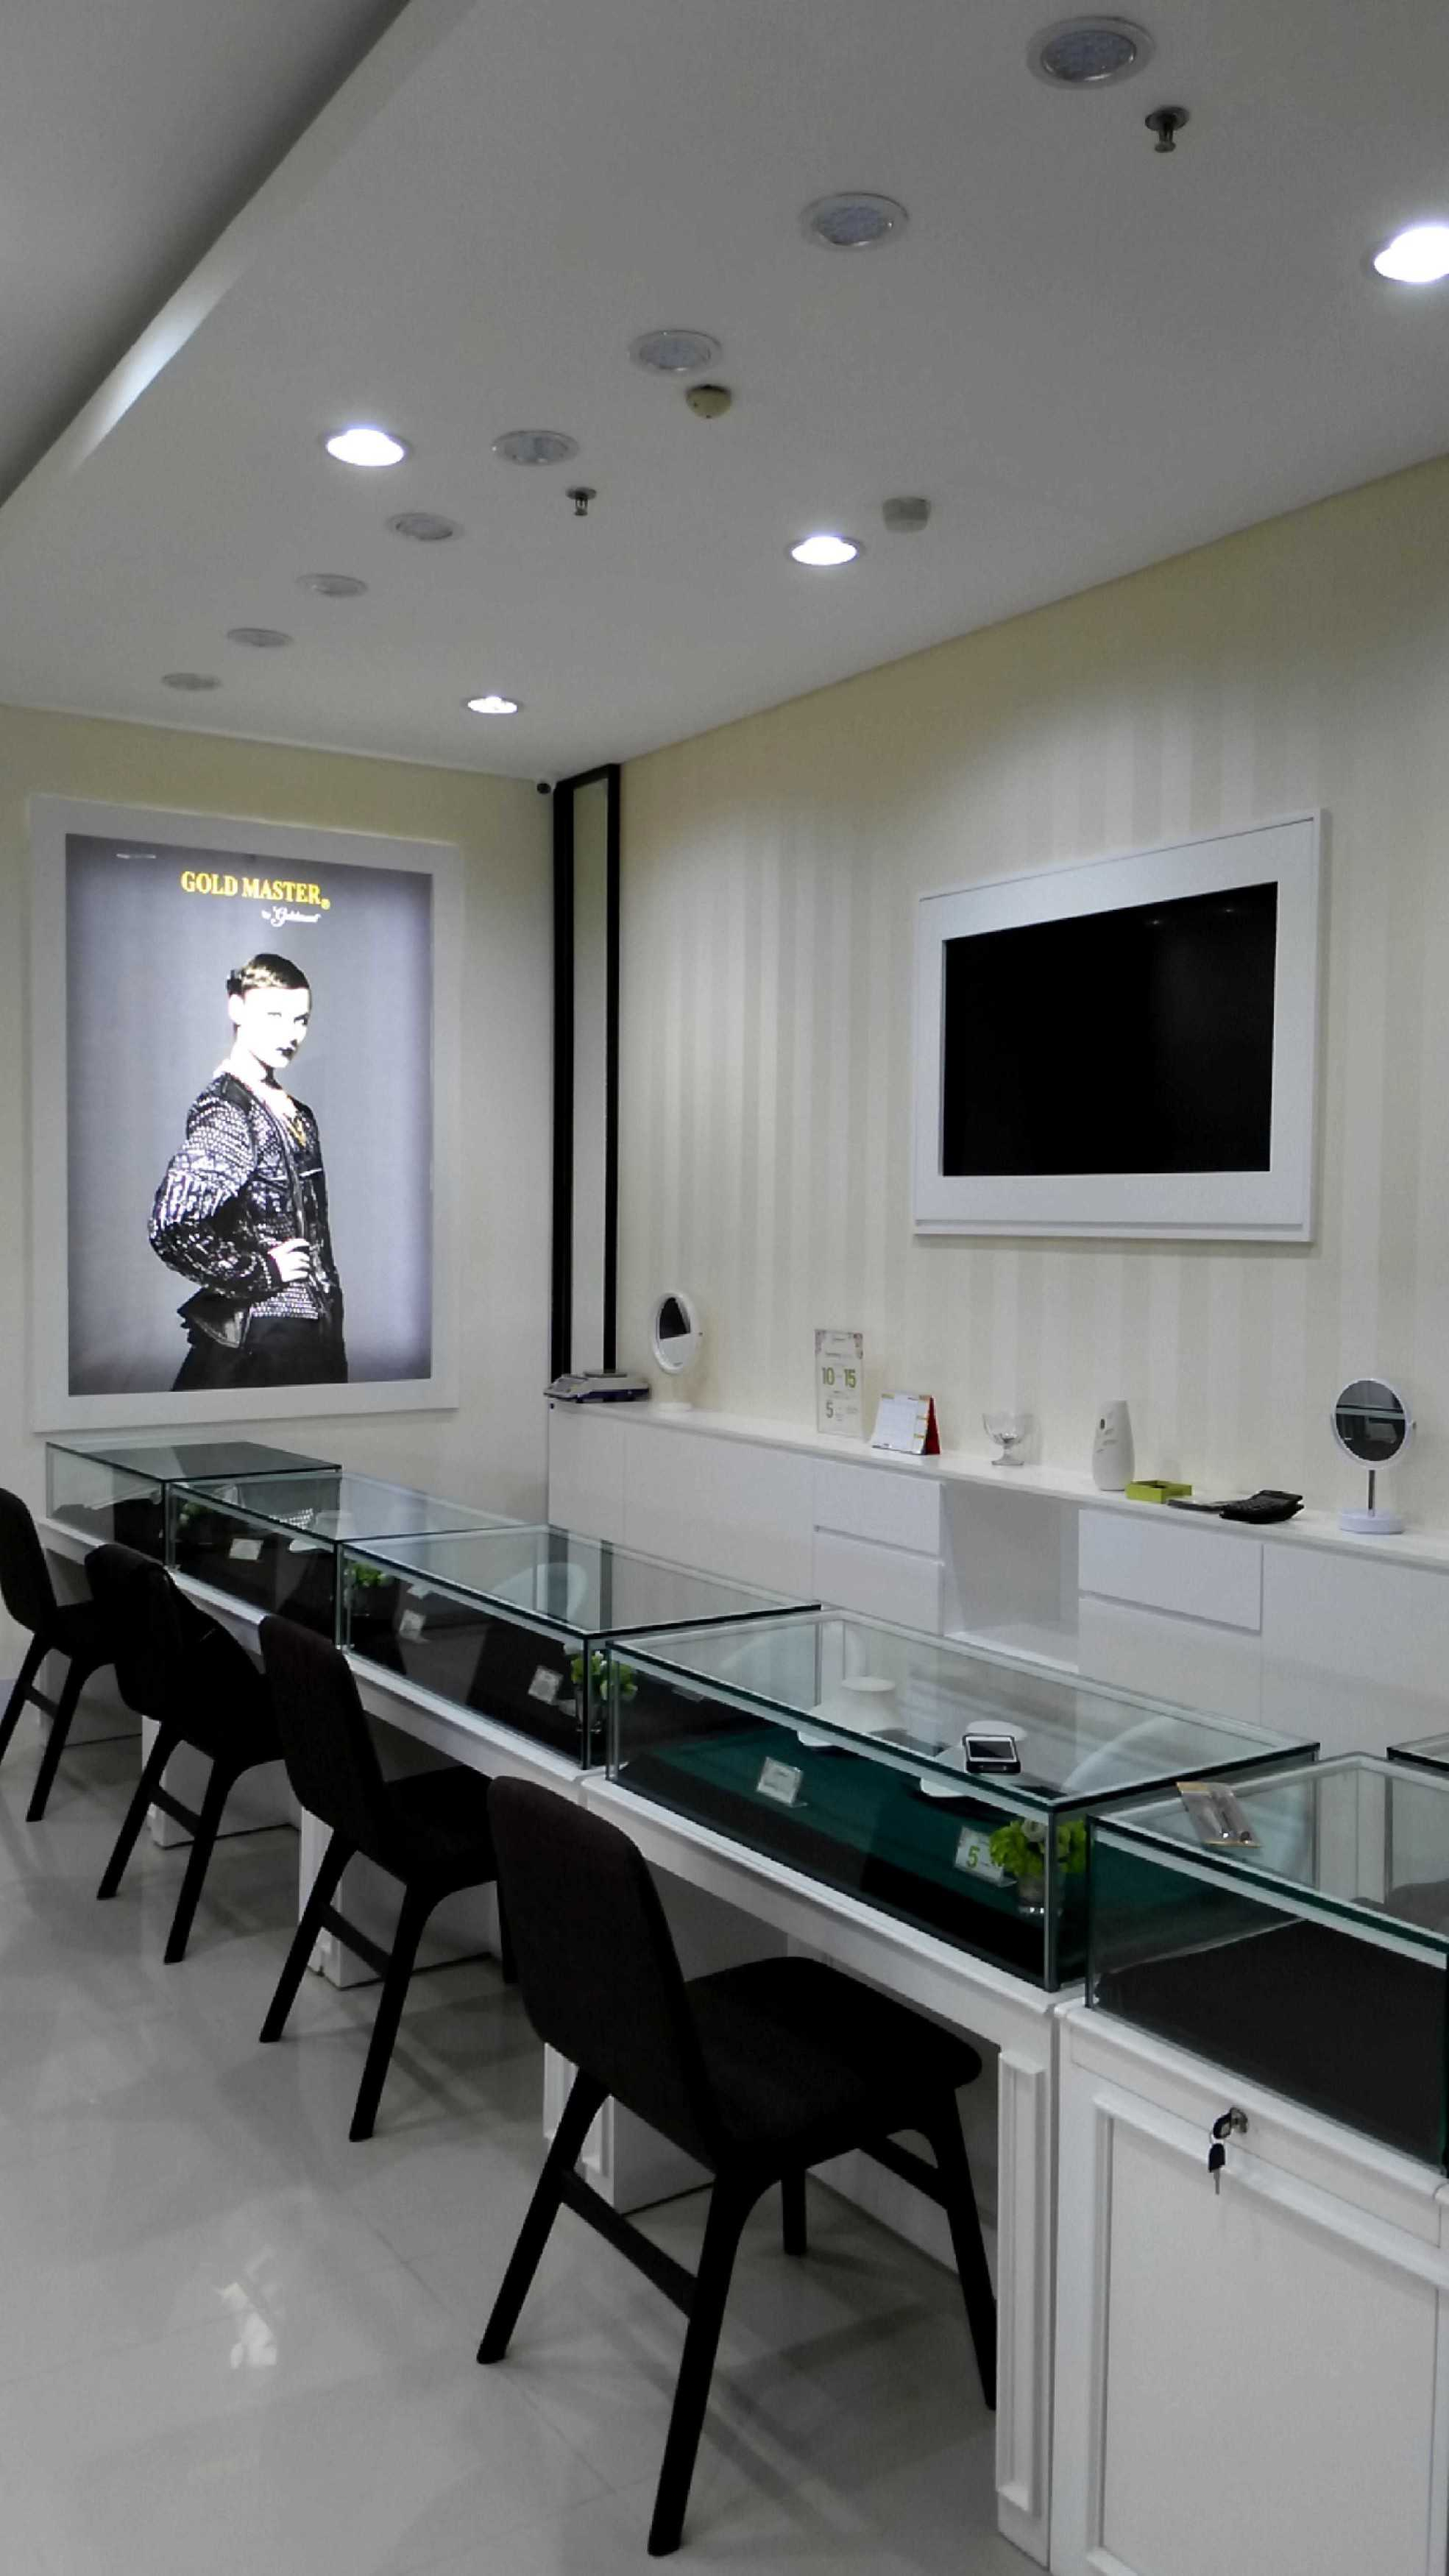 Agra Showroom Goldmart Depok Depok City, West Java, Indonesia Depok City, West Java, Indonesia Interior 3 Modern  30860